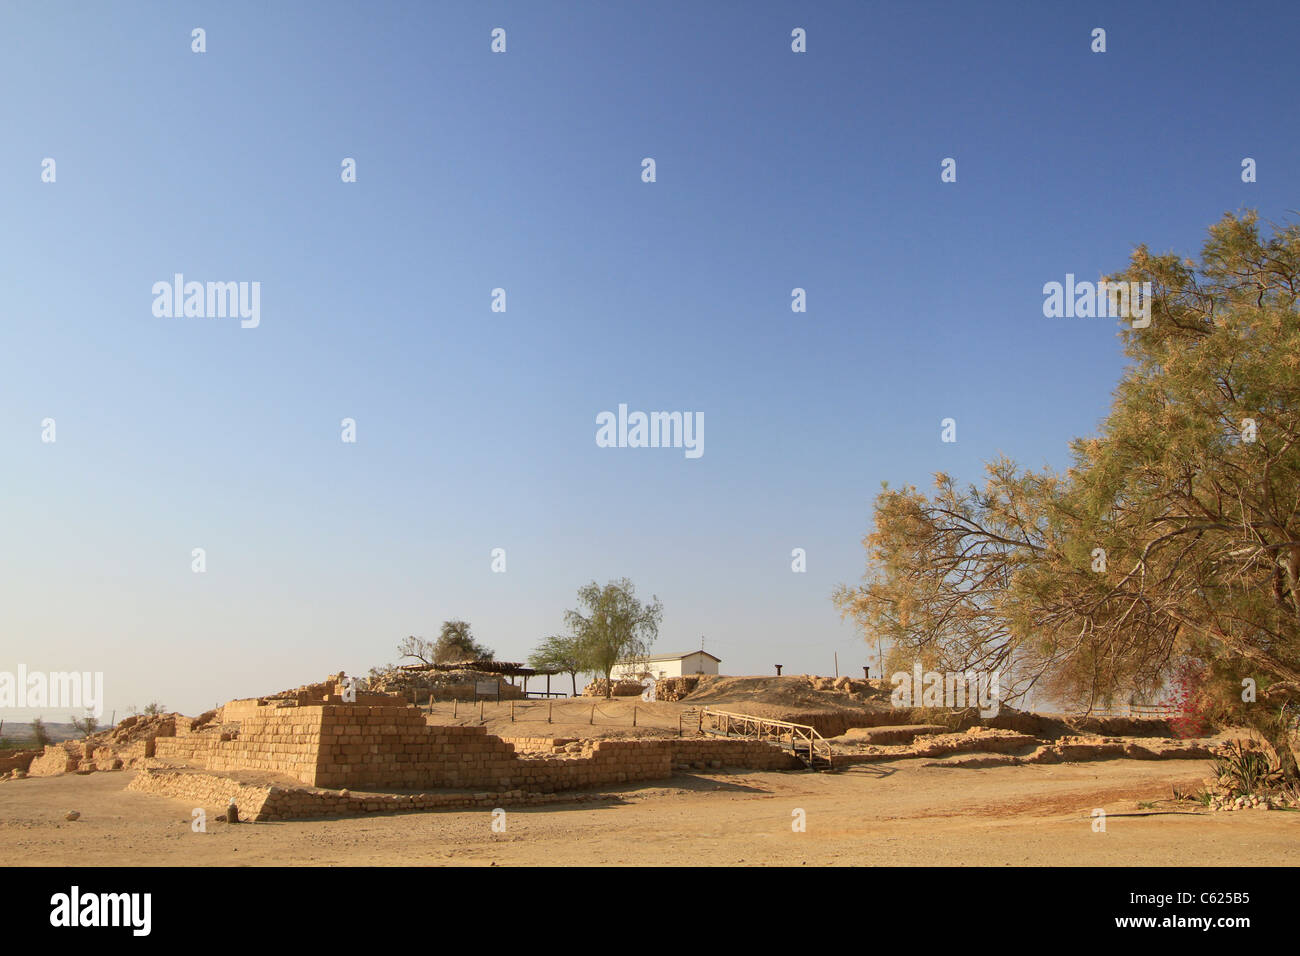 Israel, Arava, remains of Israelite fortresses at Ein Hatzeva, site of biblical Tamar, the water well Stock Photo